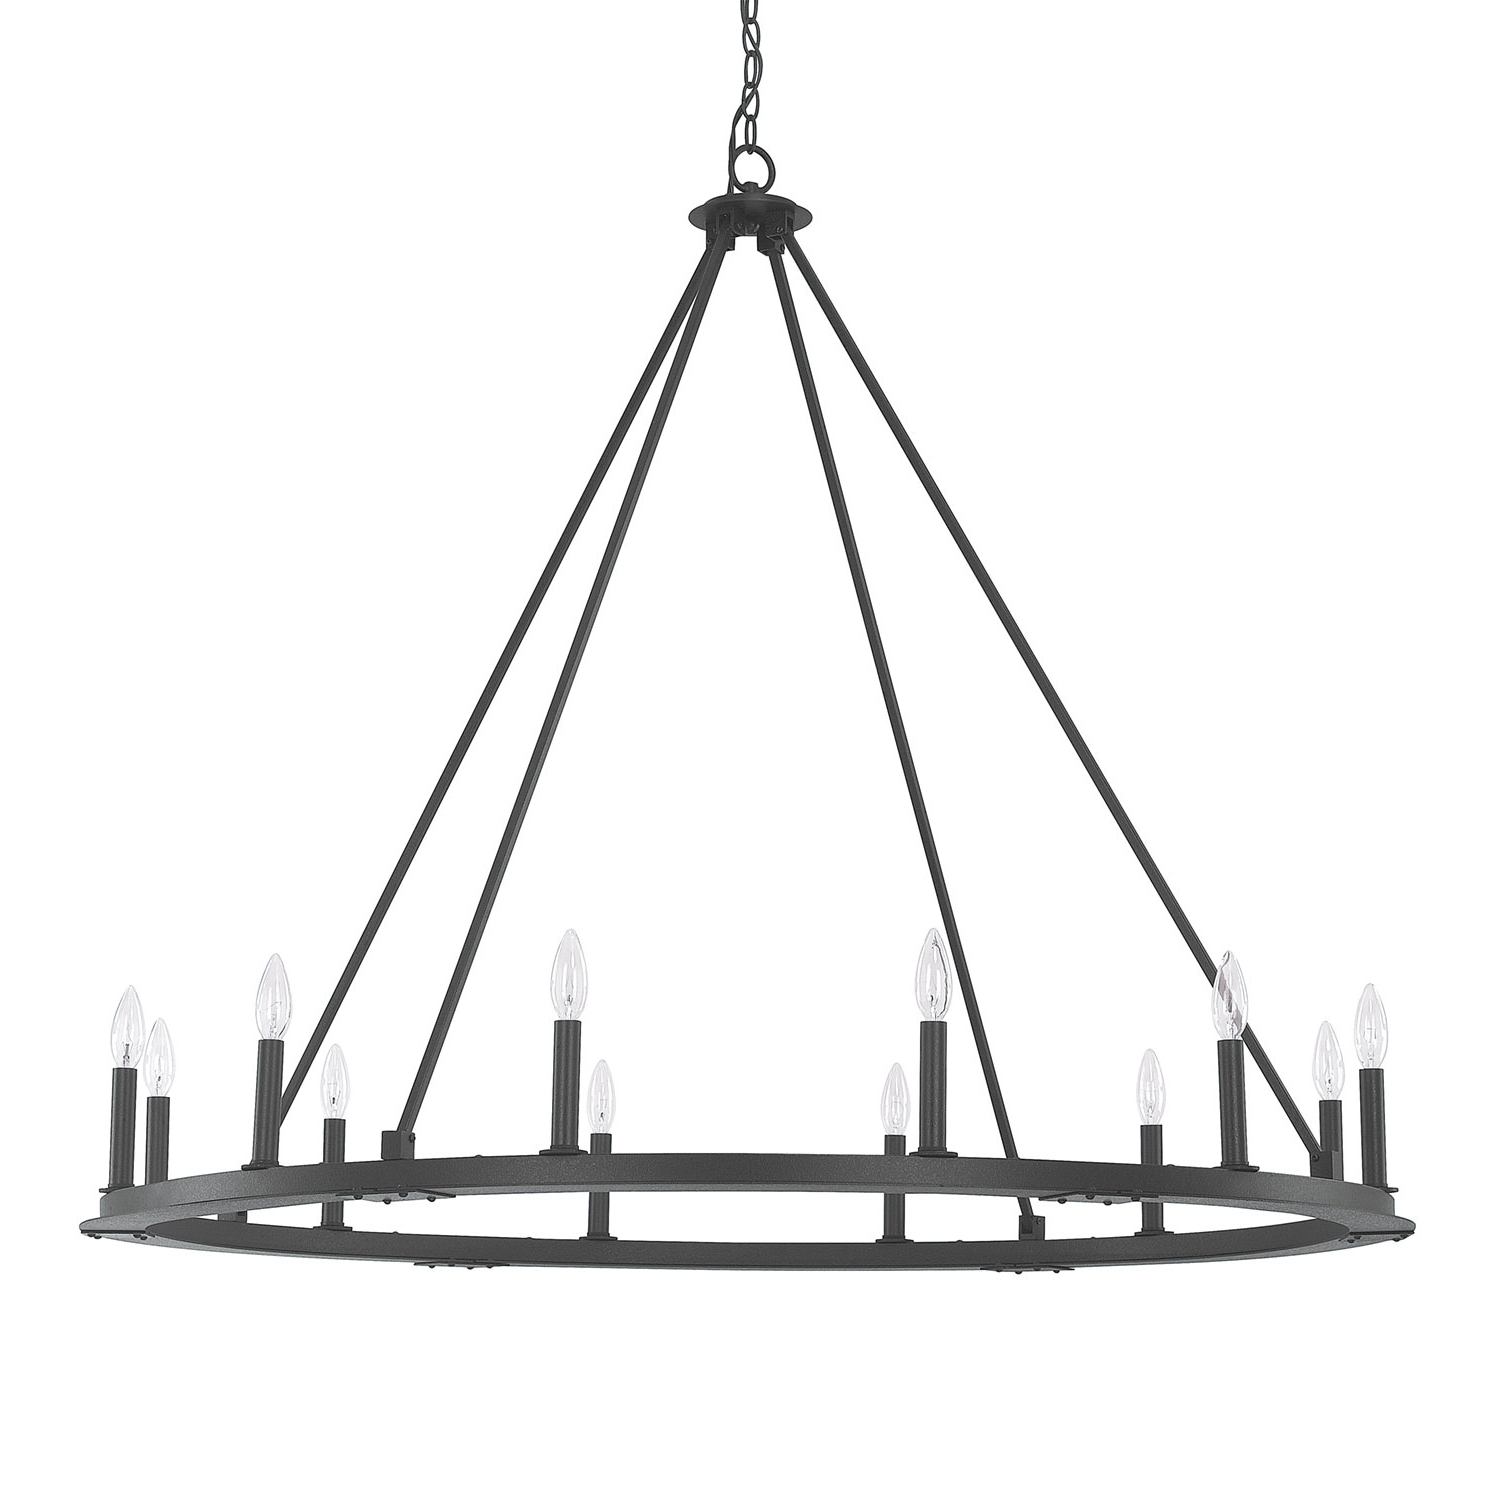 Widely Used Capital Lighting Fixture Company Pearson Black Iron Twelve Light With Regard To Black Iron Chandeliers (View 15 of 15)